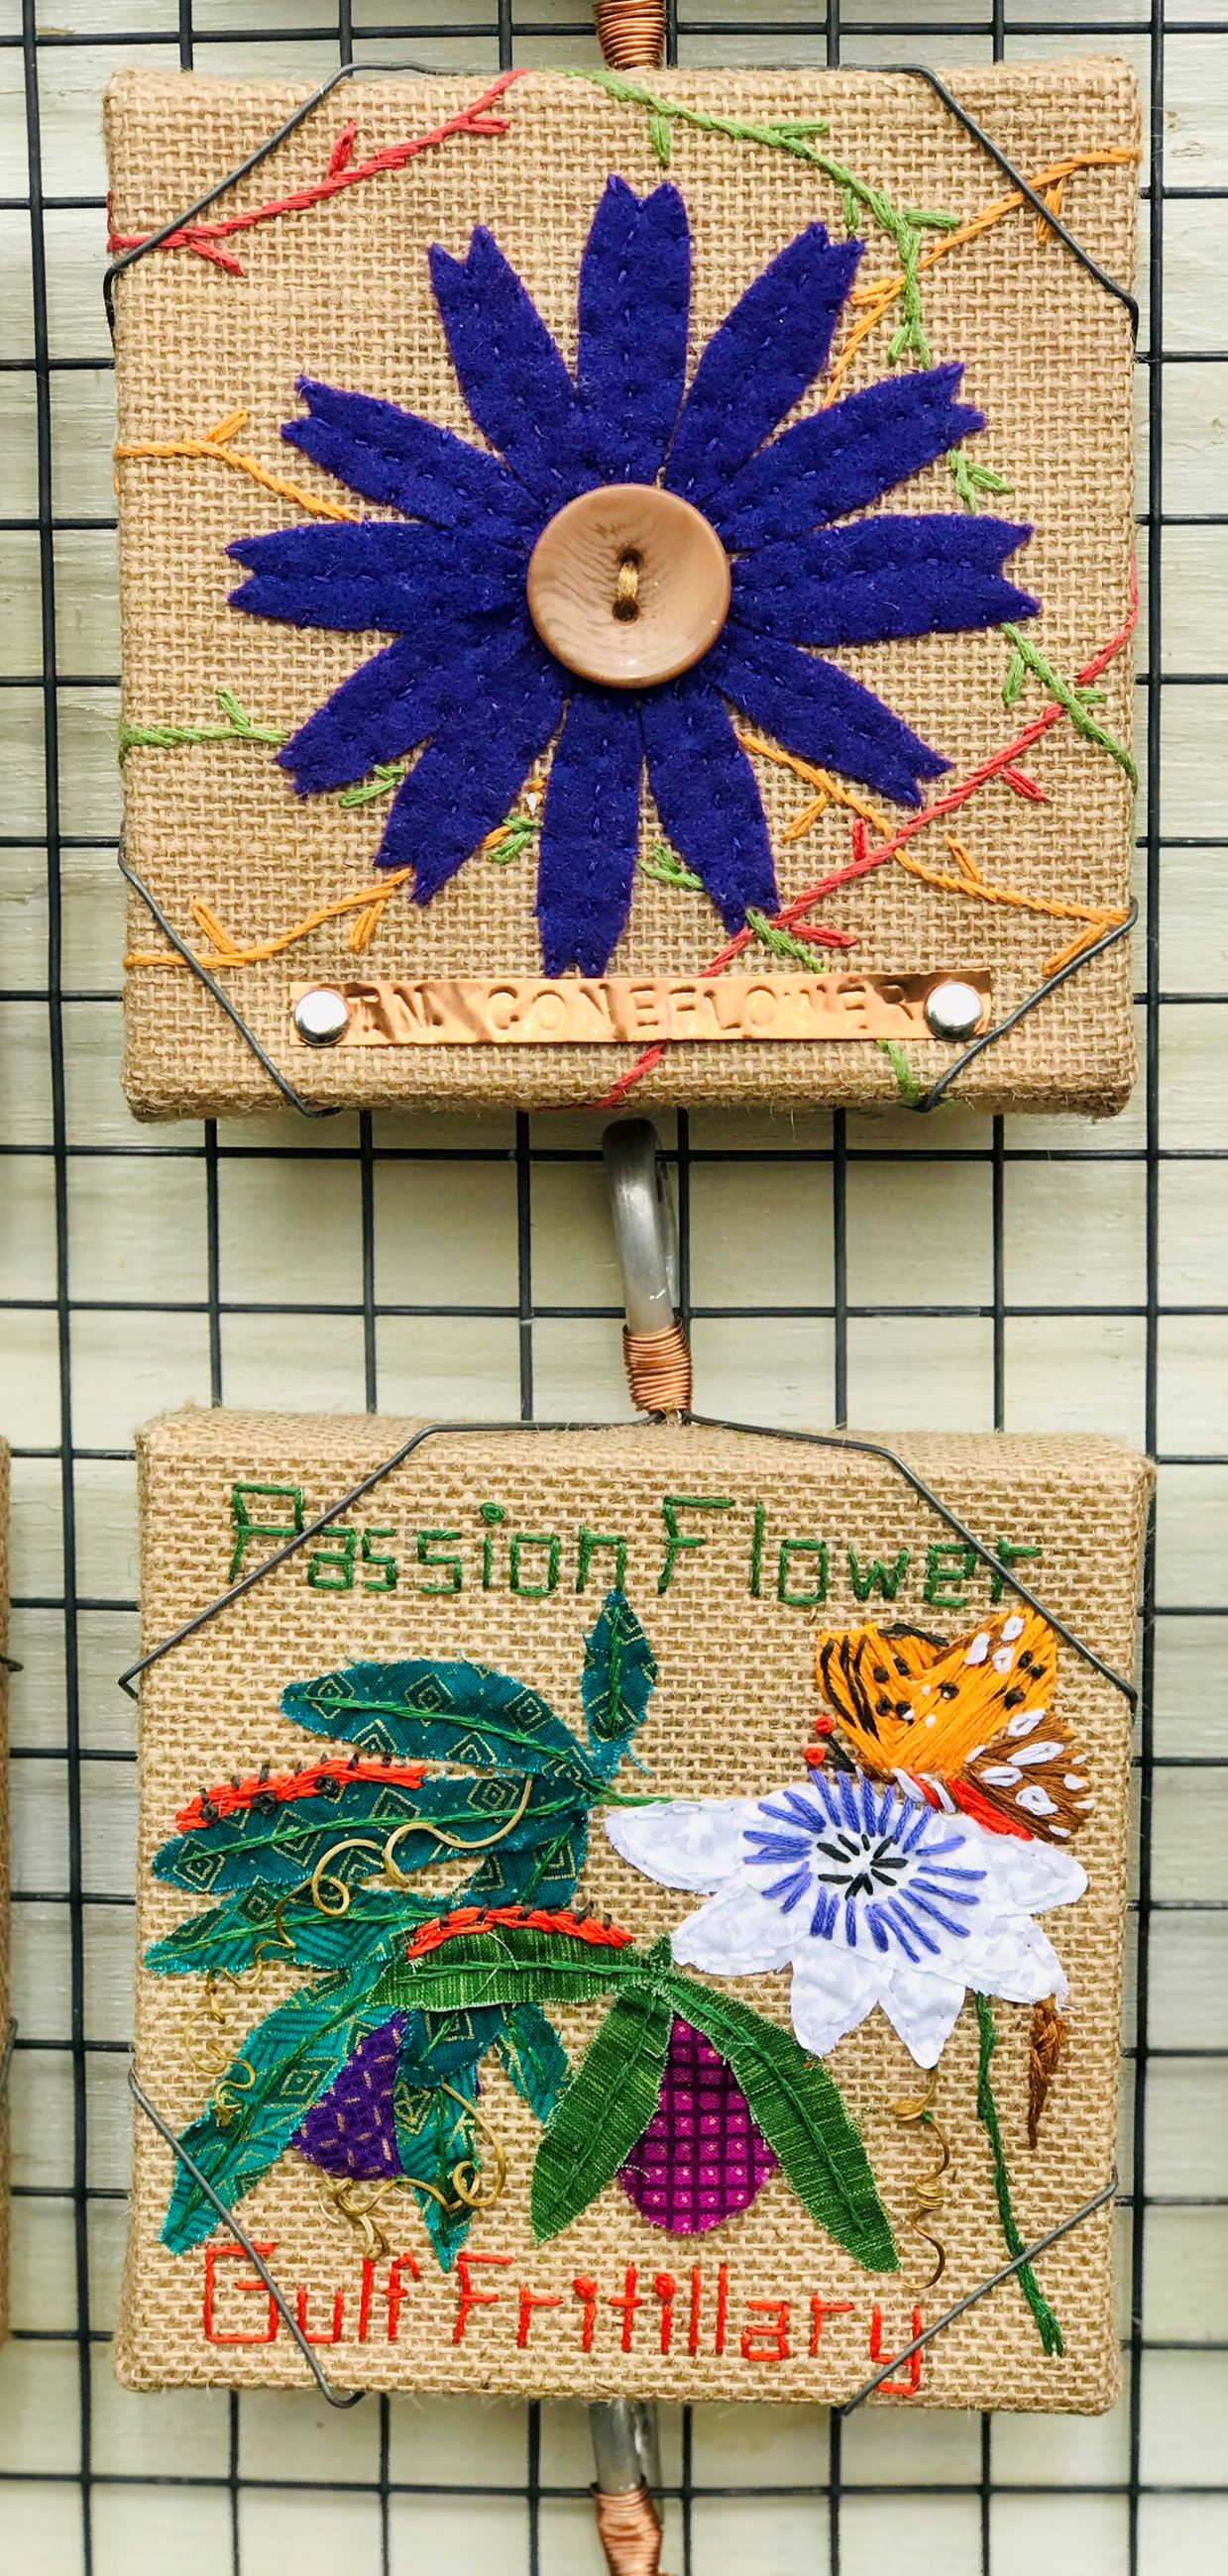 Embroidery artists Stacey Brown - TN Coneflower & Suzanne LeBeau -Passion Flower and Gulf Fritillary